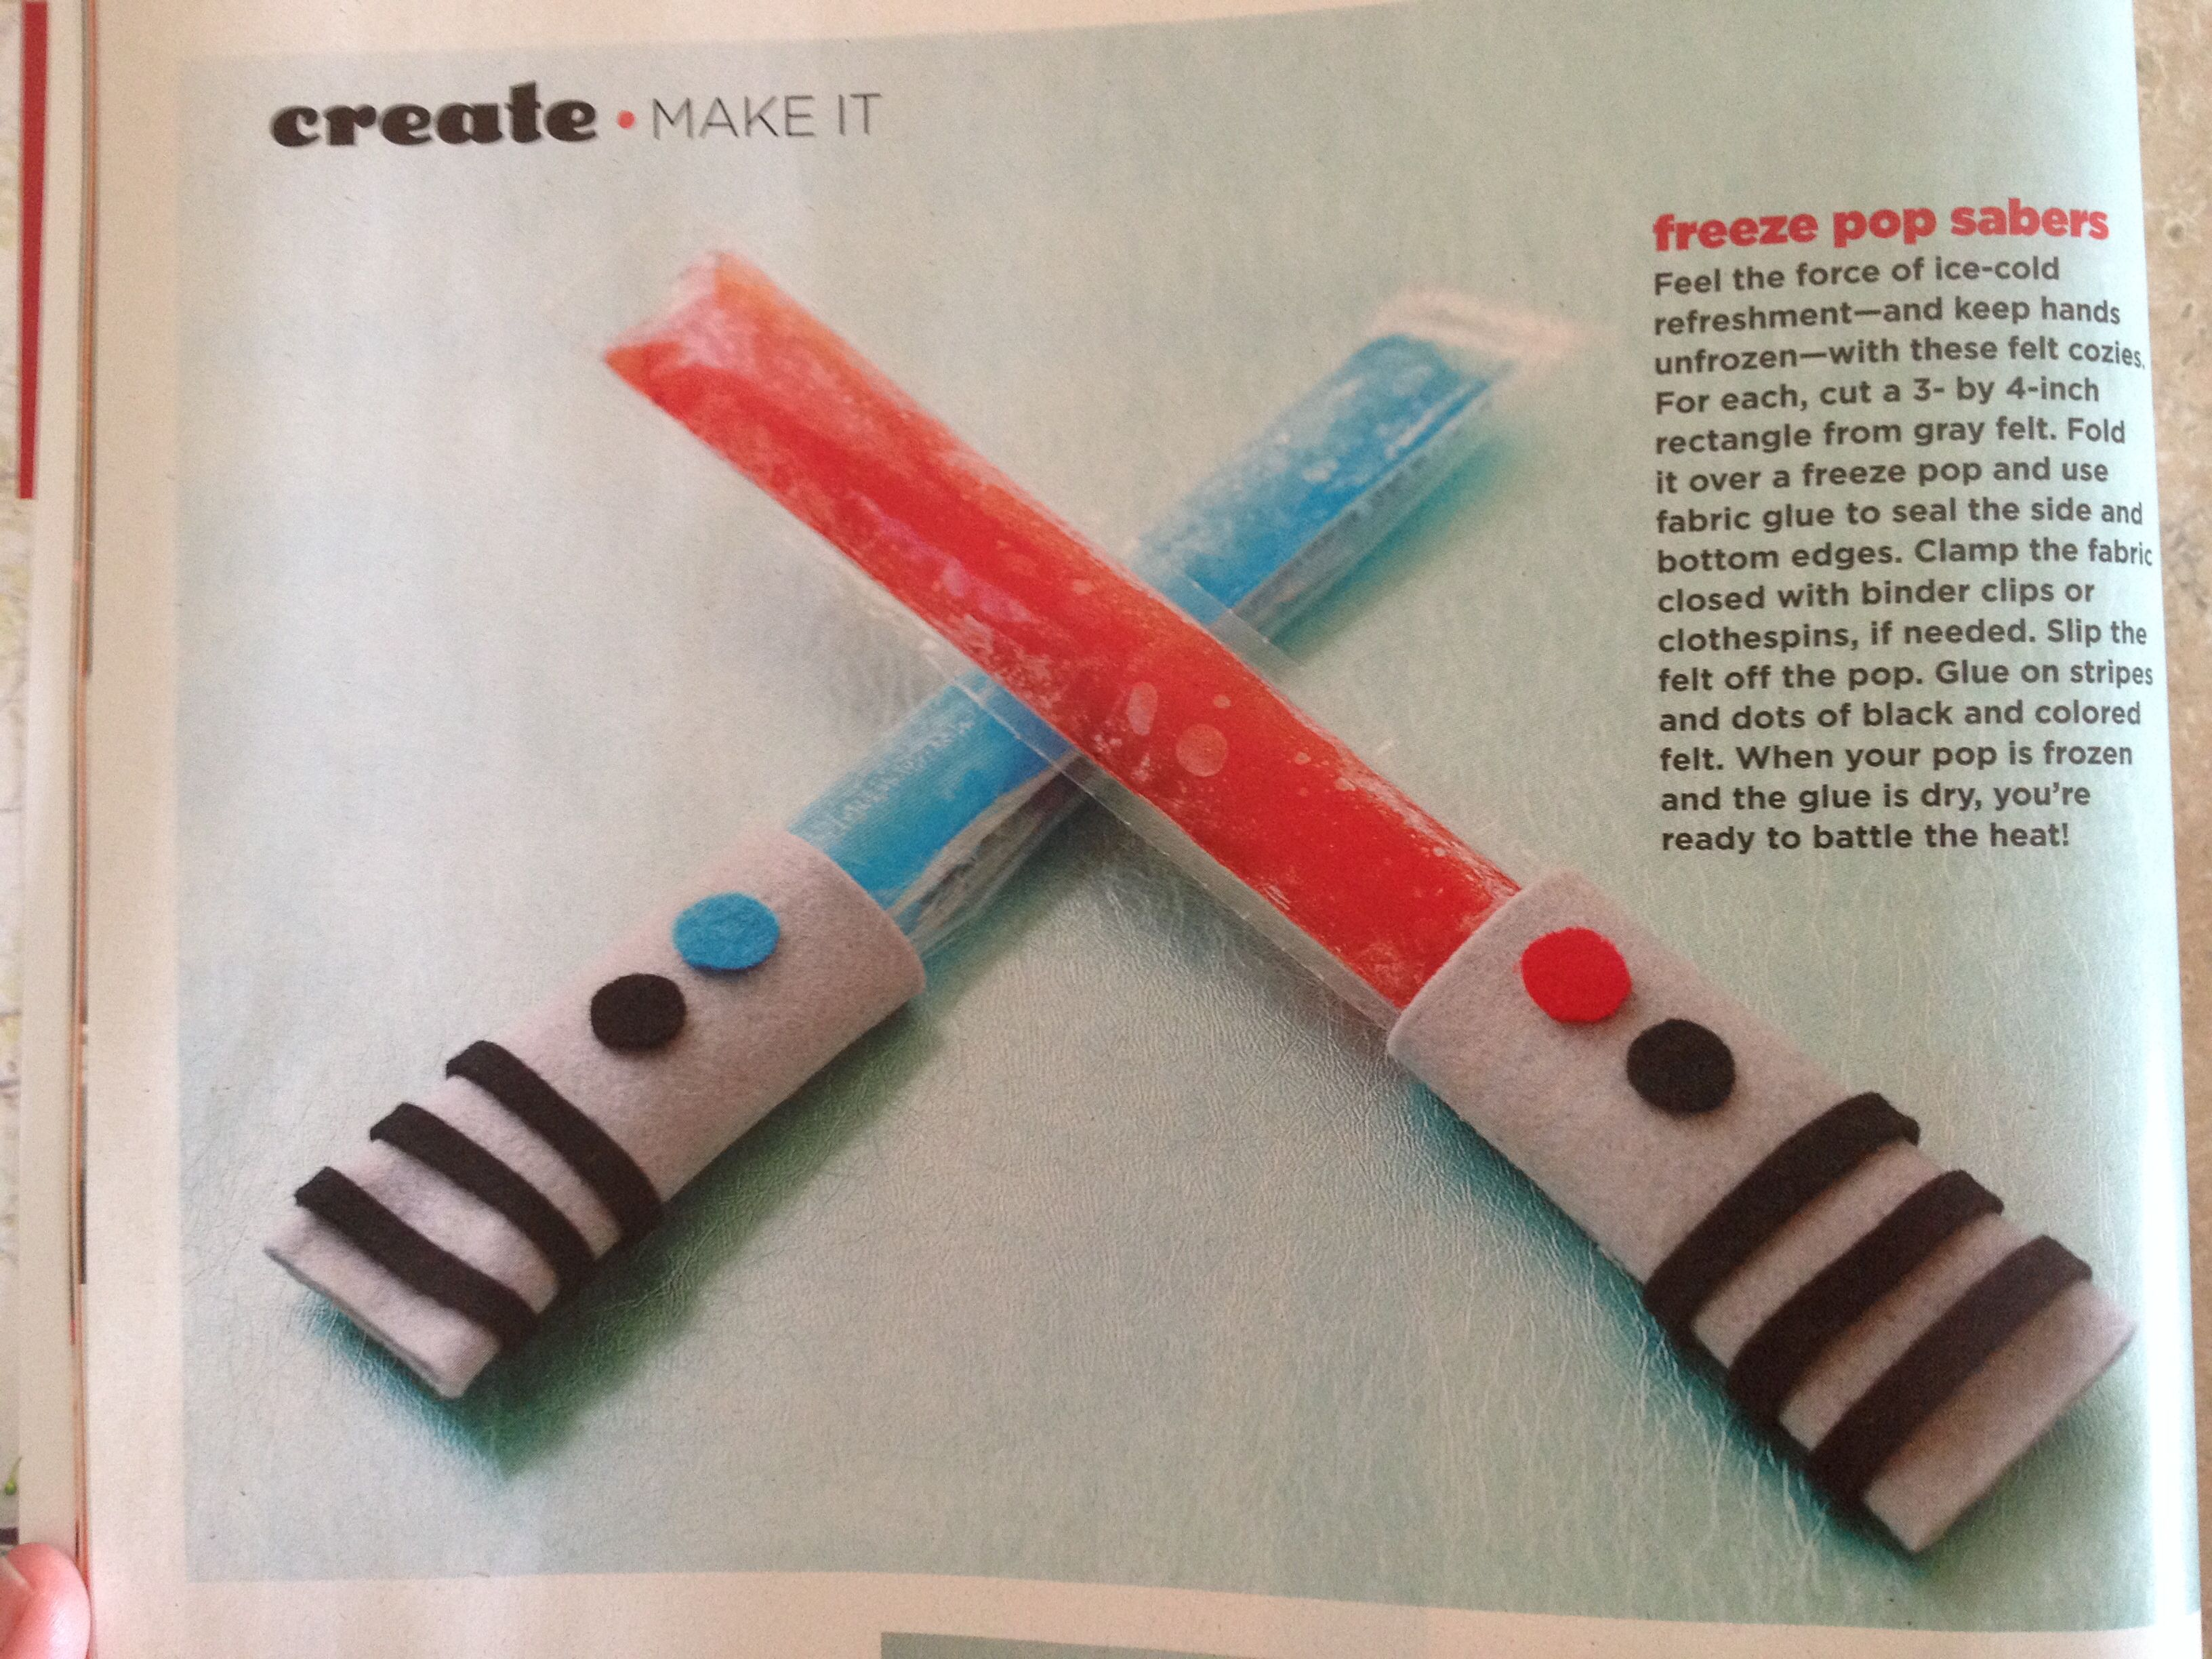 Light saber freeze pops! Yes Please!!!